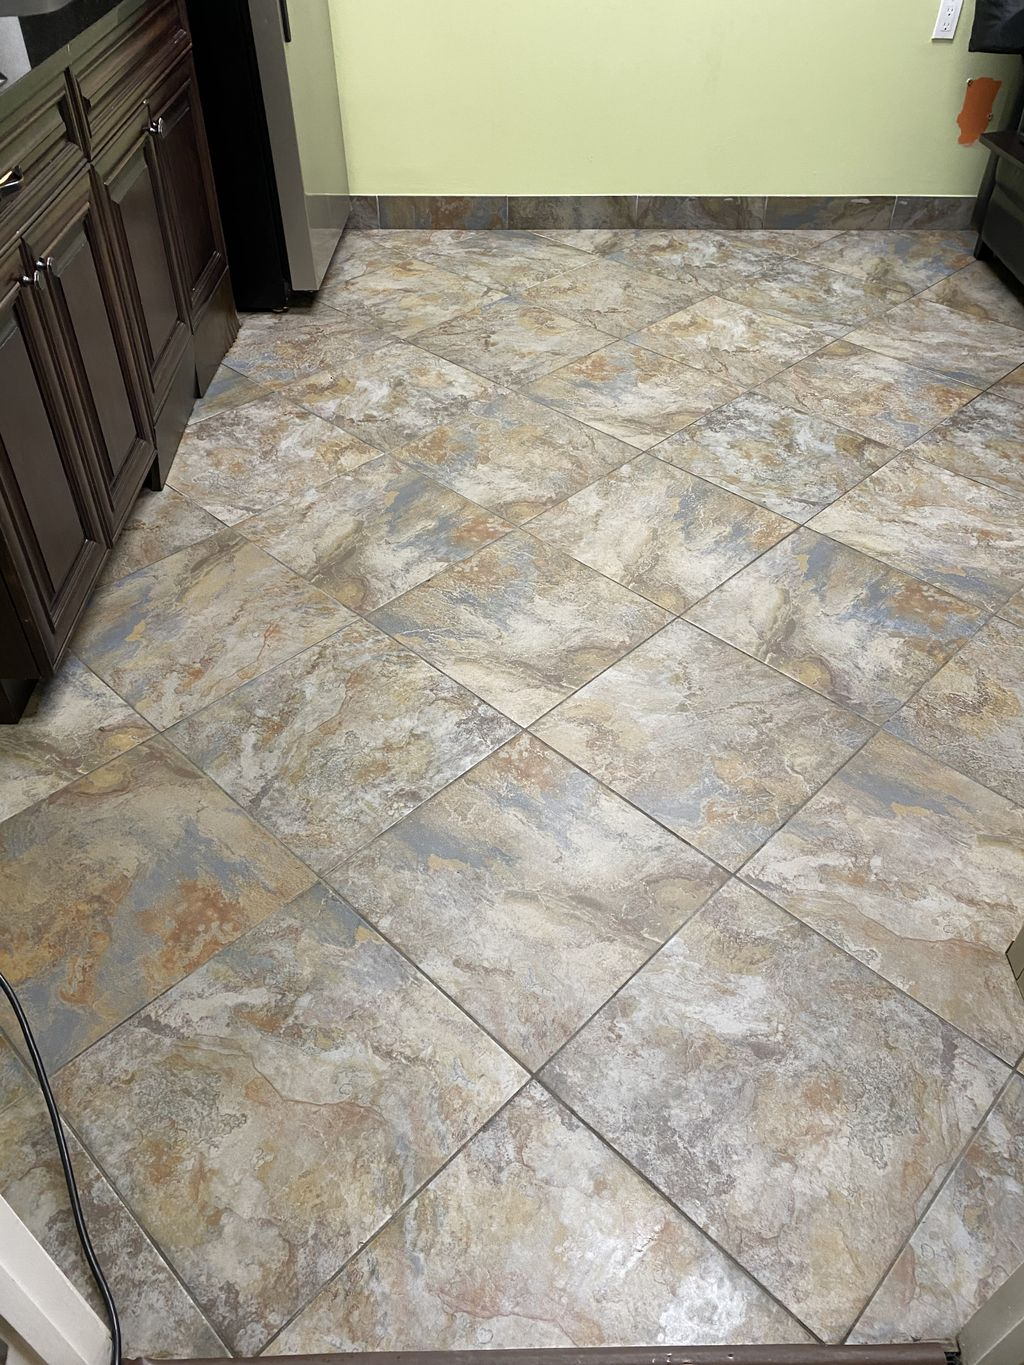 Office, bathrooms, laundry room, kitchen, tile and grout cleaning